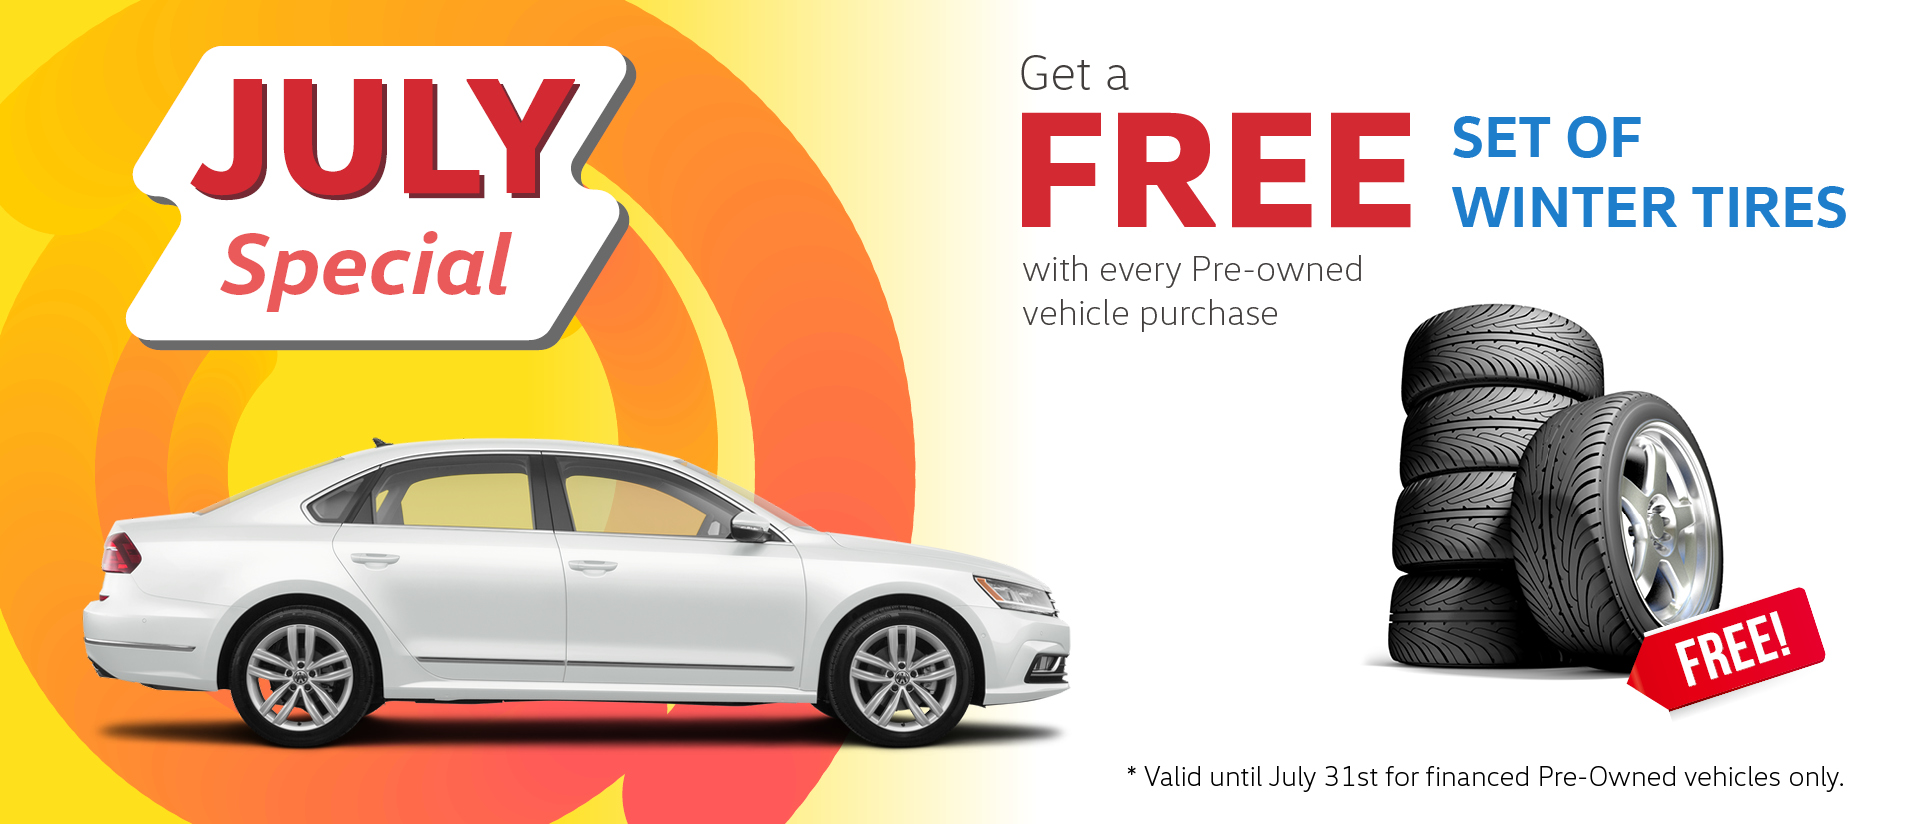 824a 21 Mgvw Pre Owned July Offers Desktop Banner